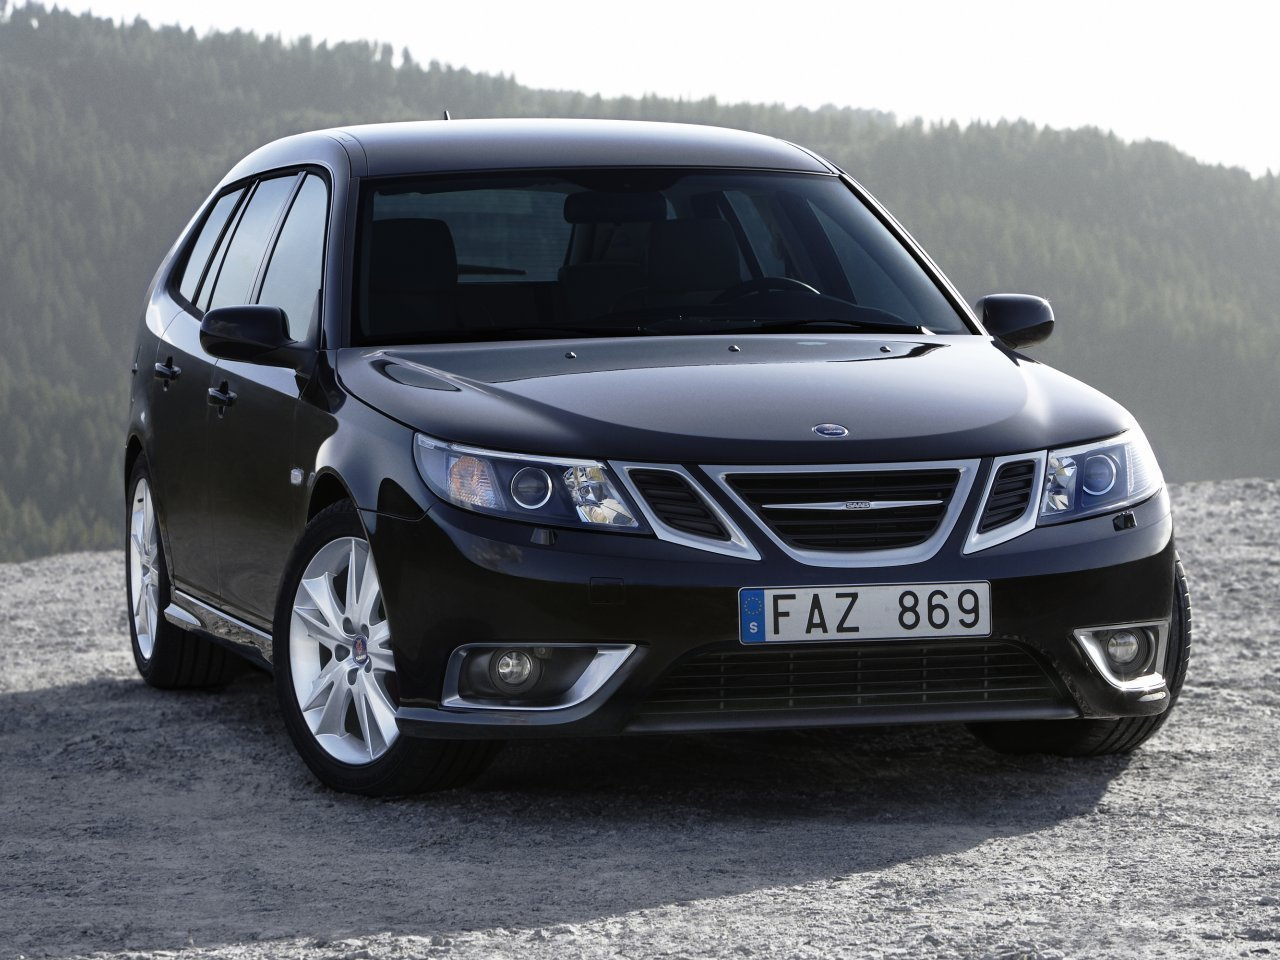 Latest Saab Wallpaper Concept Cars Free Download